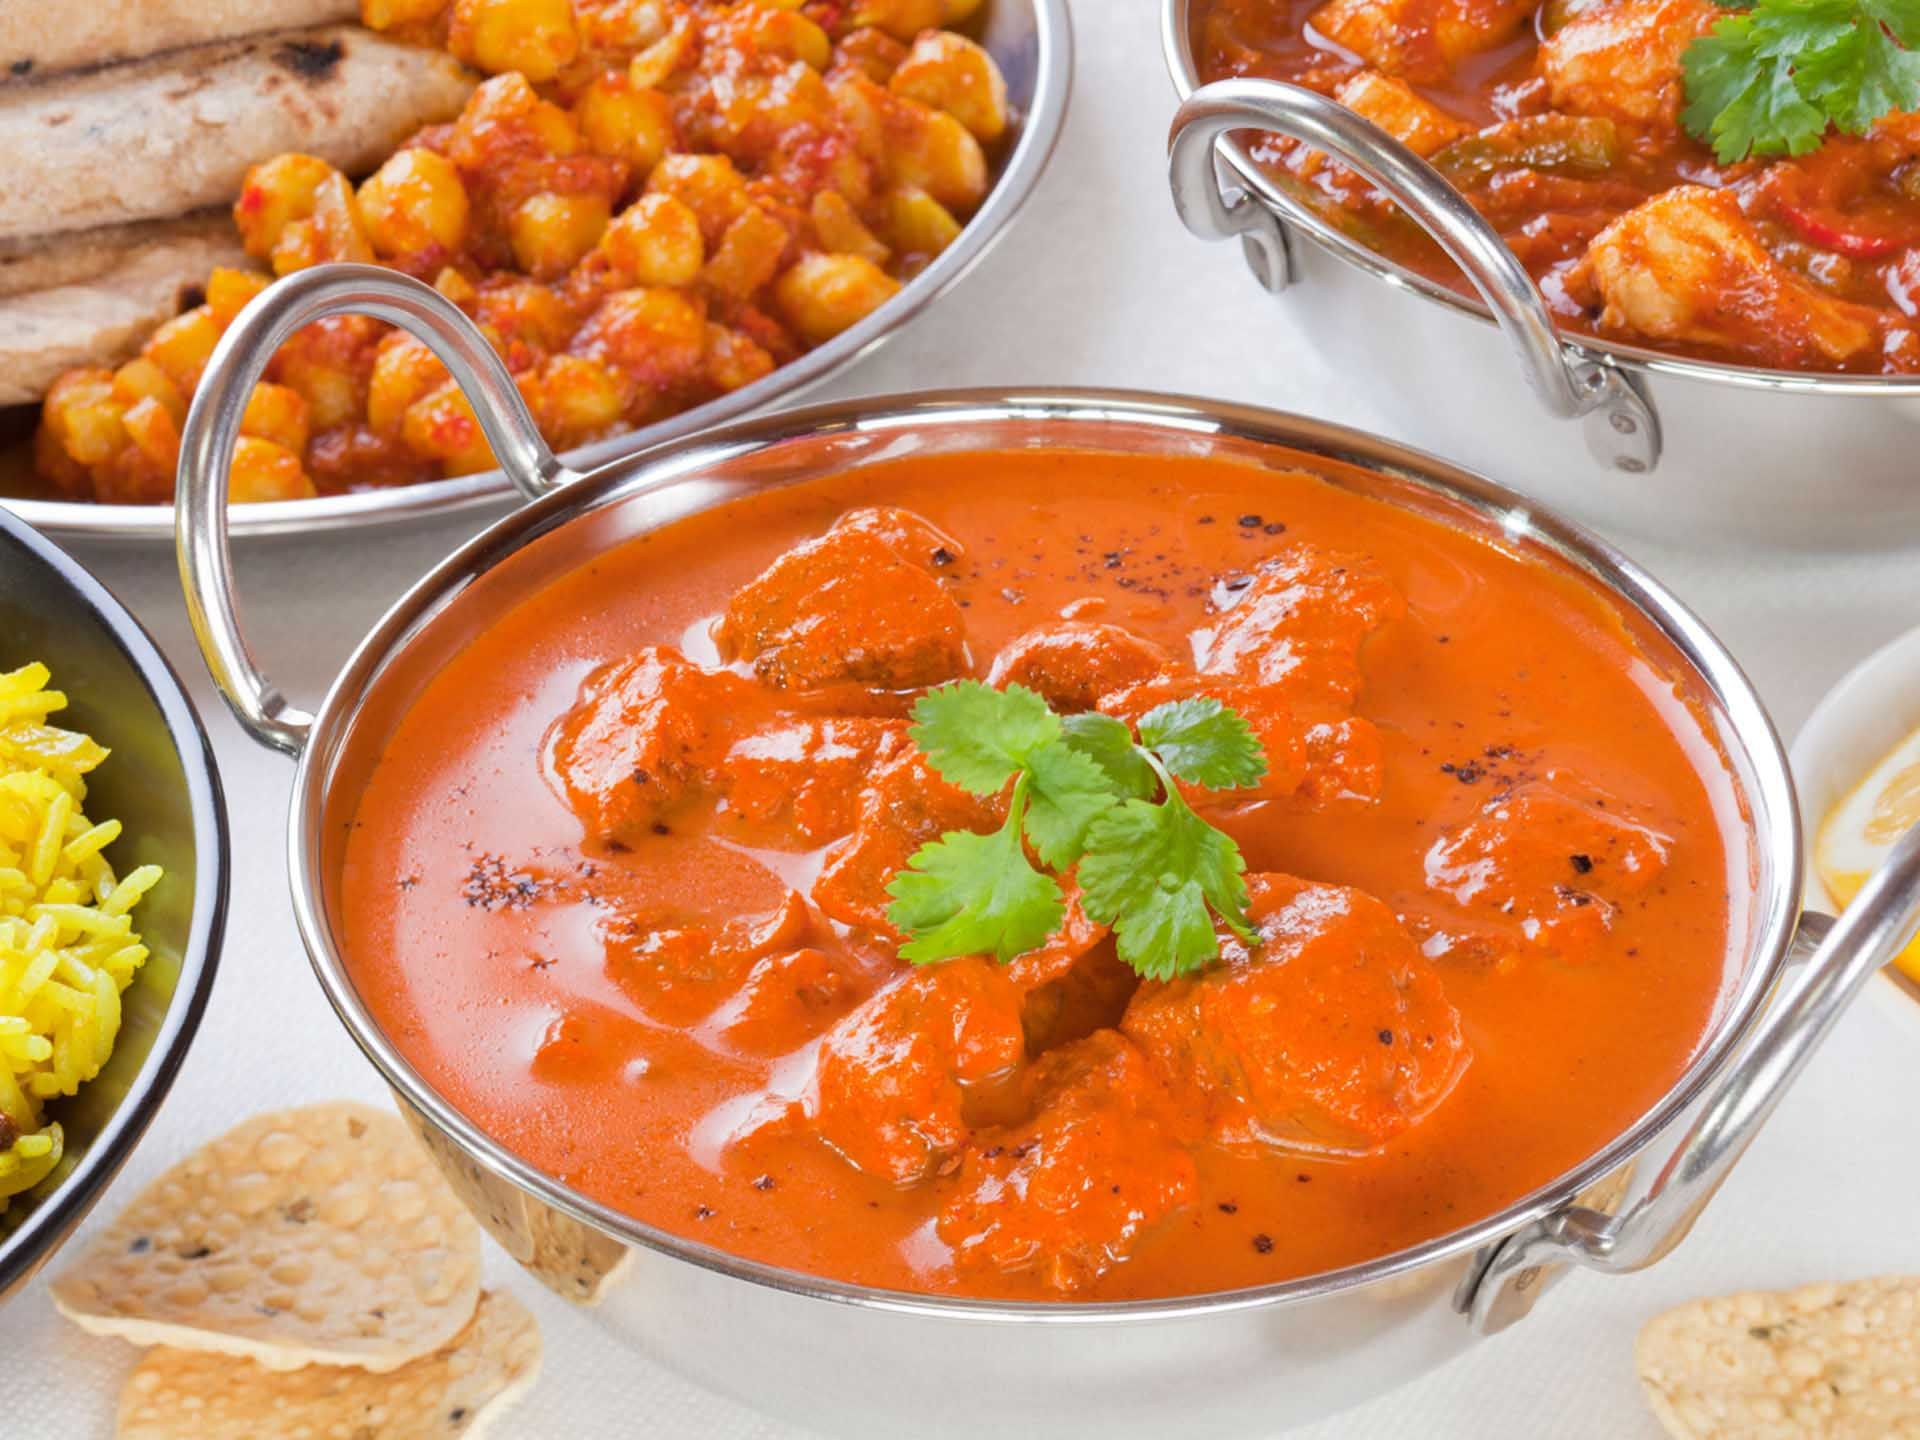 Indian Delivery Indian Restaurant Delivery Eat24 Order